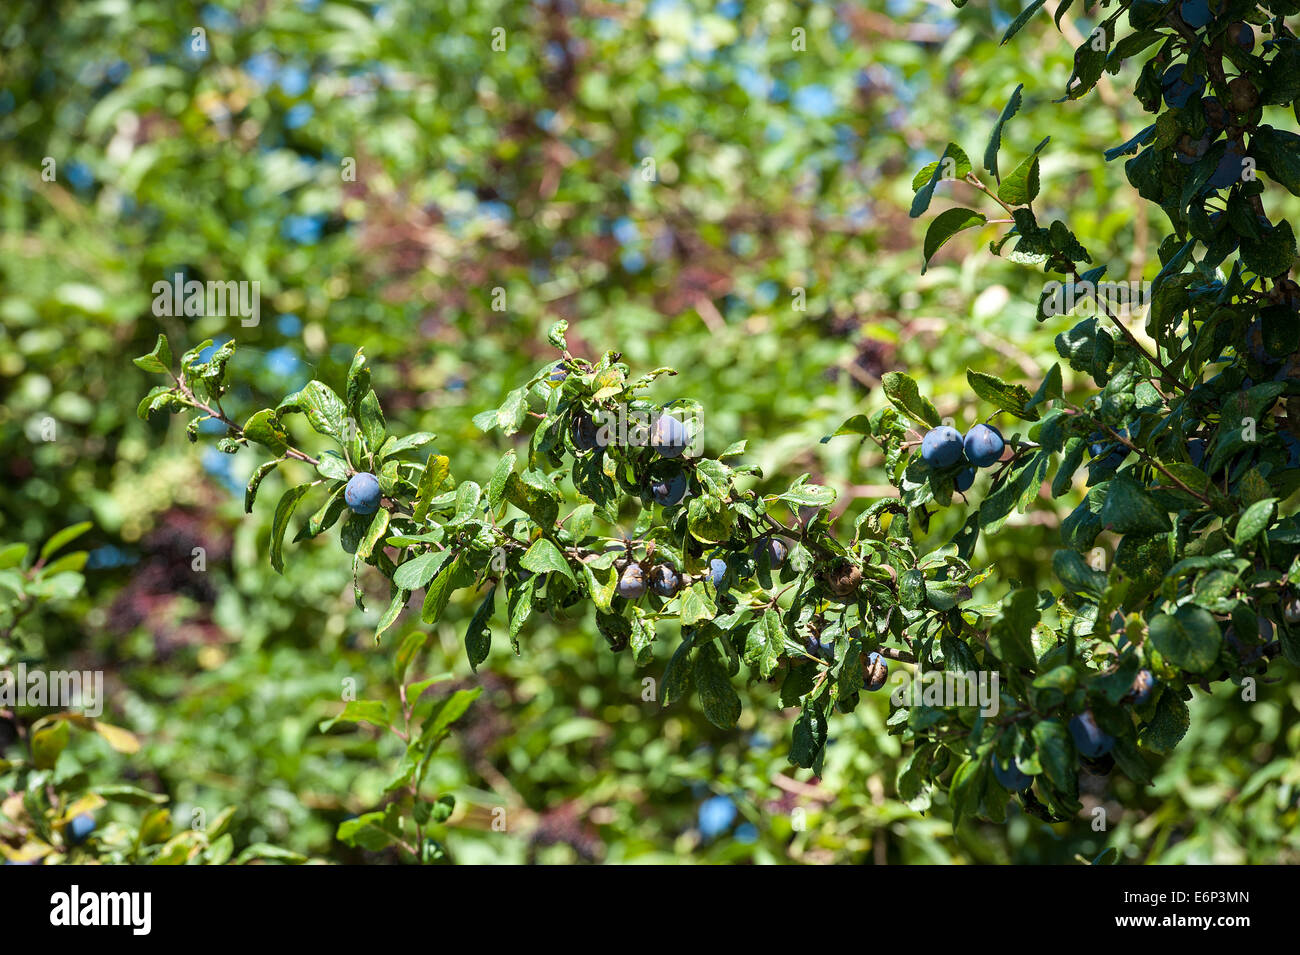 Damson and Elder berries on a tree - Stock Image